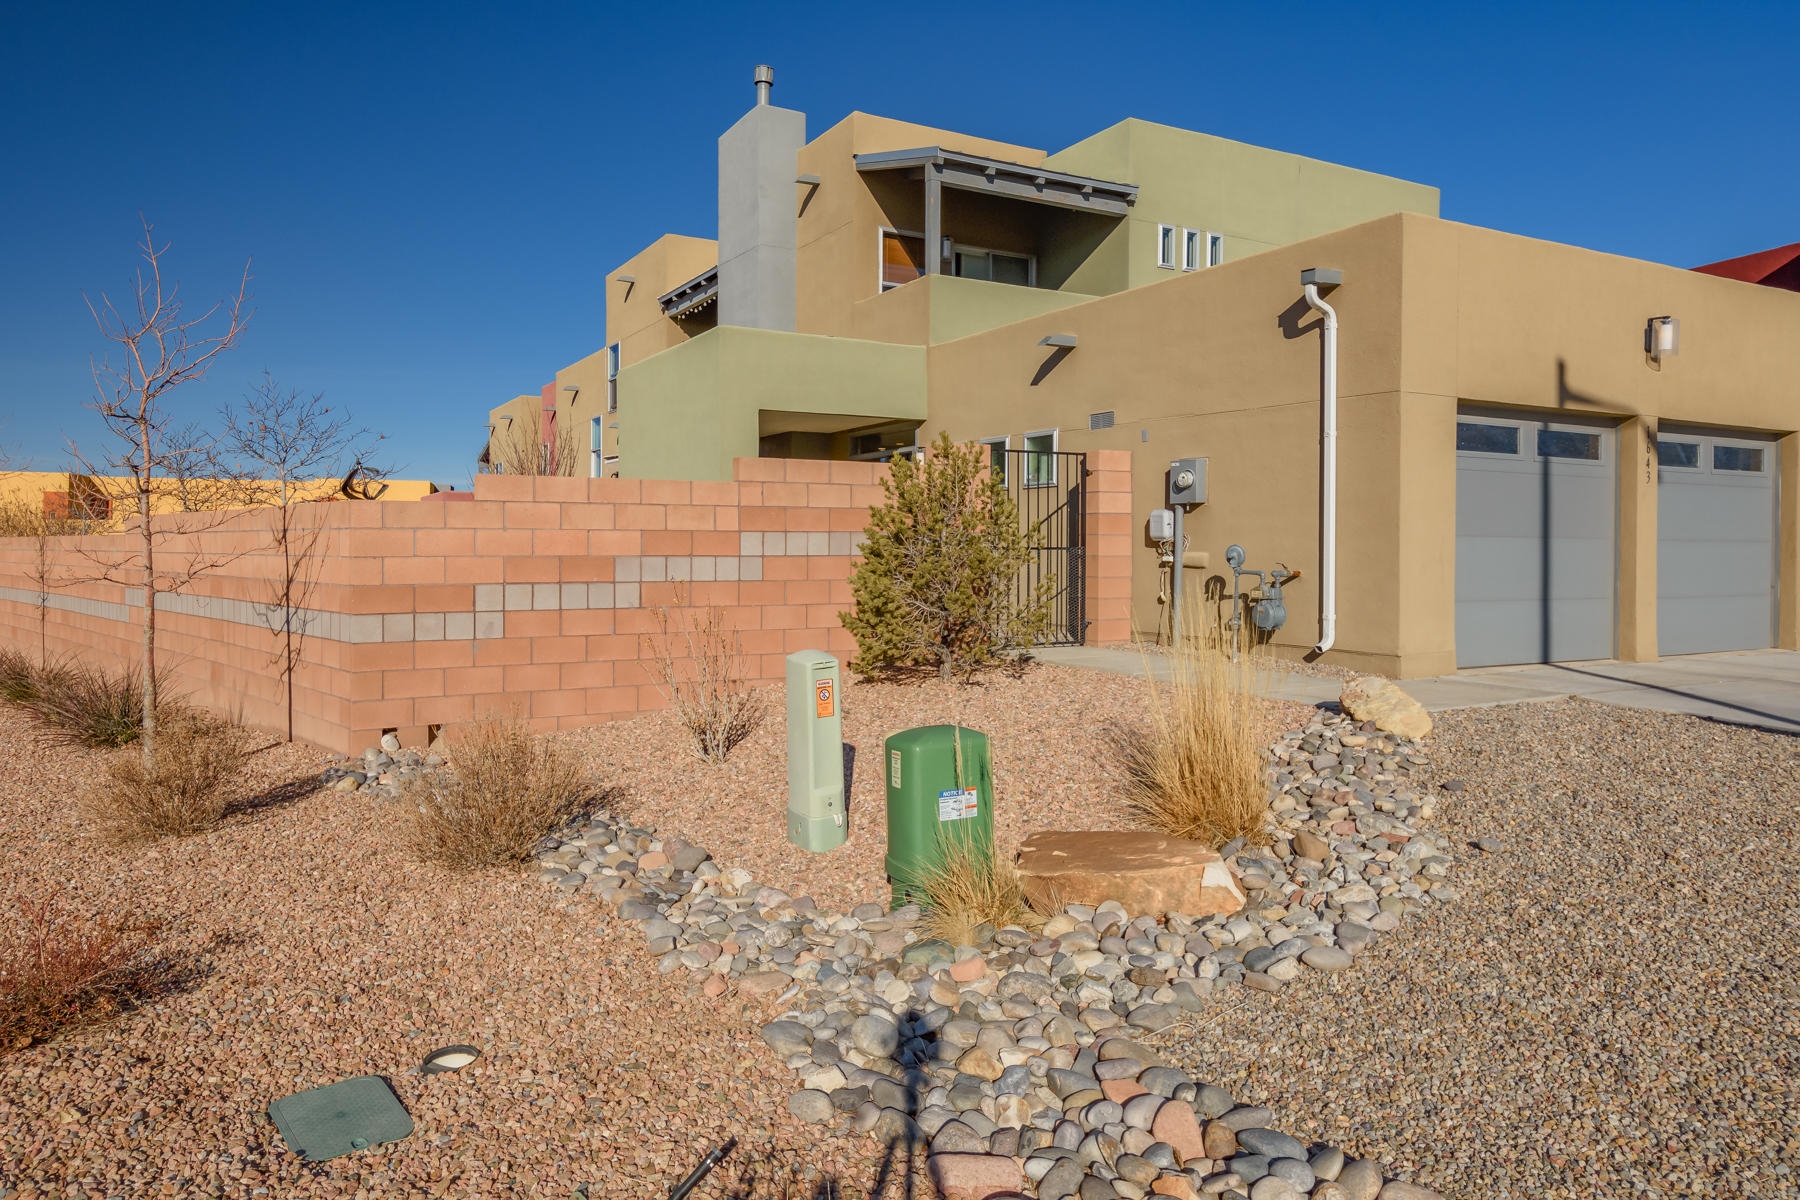 Gently lived in RayLee Home w/ $22,000+ of Add'l Upgrades Including An Awesome Motorized Custom Patio Awning, Over $3K In Window Treatments and $12K in Landscaping-Sprinklers-Planters & Patio Pavers. Corner Lot Boasts 2 Upper Balconies to Enjoy The Sandias* The Spacious, Open Main Floor Features Soaring Ceilings, Neutral Tile Flooring In The Public Areas, Upgraded Lighting, Gas Fireplace AND A Bedroom w/ Tiled Bath* Stainless Steel Appliances, Silestone Countertops, Brkfst Bar & Abundant Cabinets Make This Kitchen A Joy* Newer Refrigerator, Washer & Dryer negotiable! The Master Bedroom & Bath Are Well Appointed w/ a Huge Walk In Closet, Oversized Shower & Soaking Tub! Close to Kirtland AFB, Sandia Labs & Shopping!